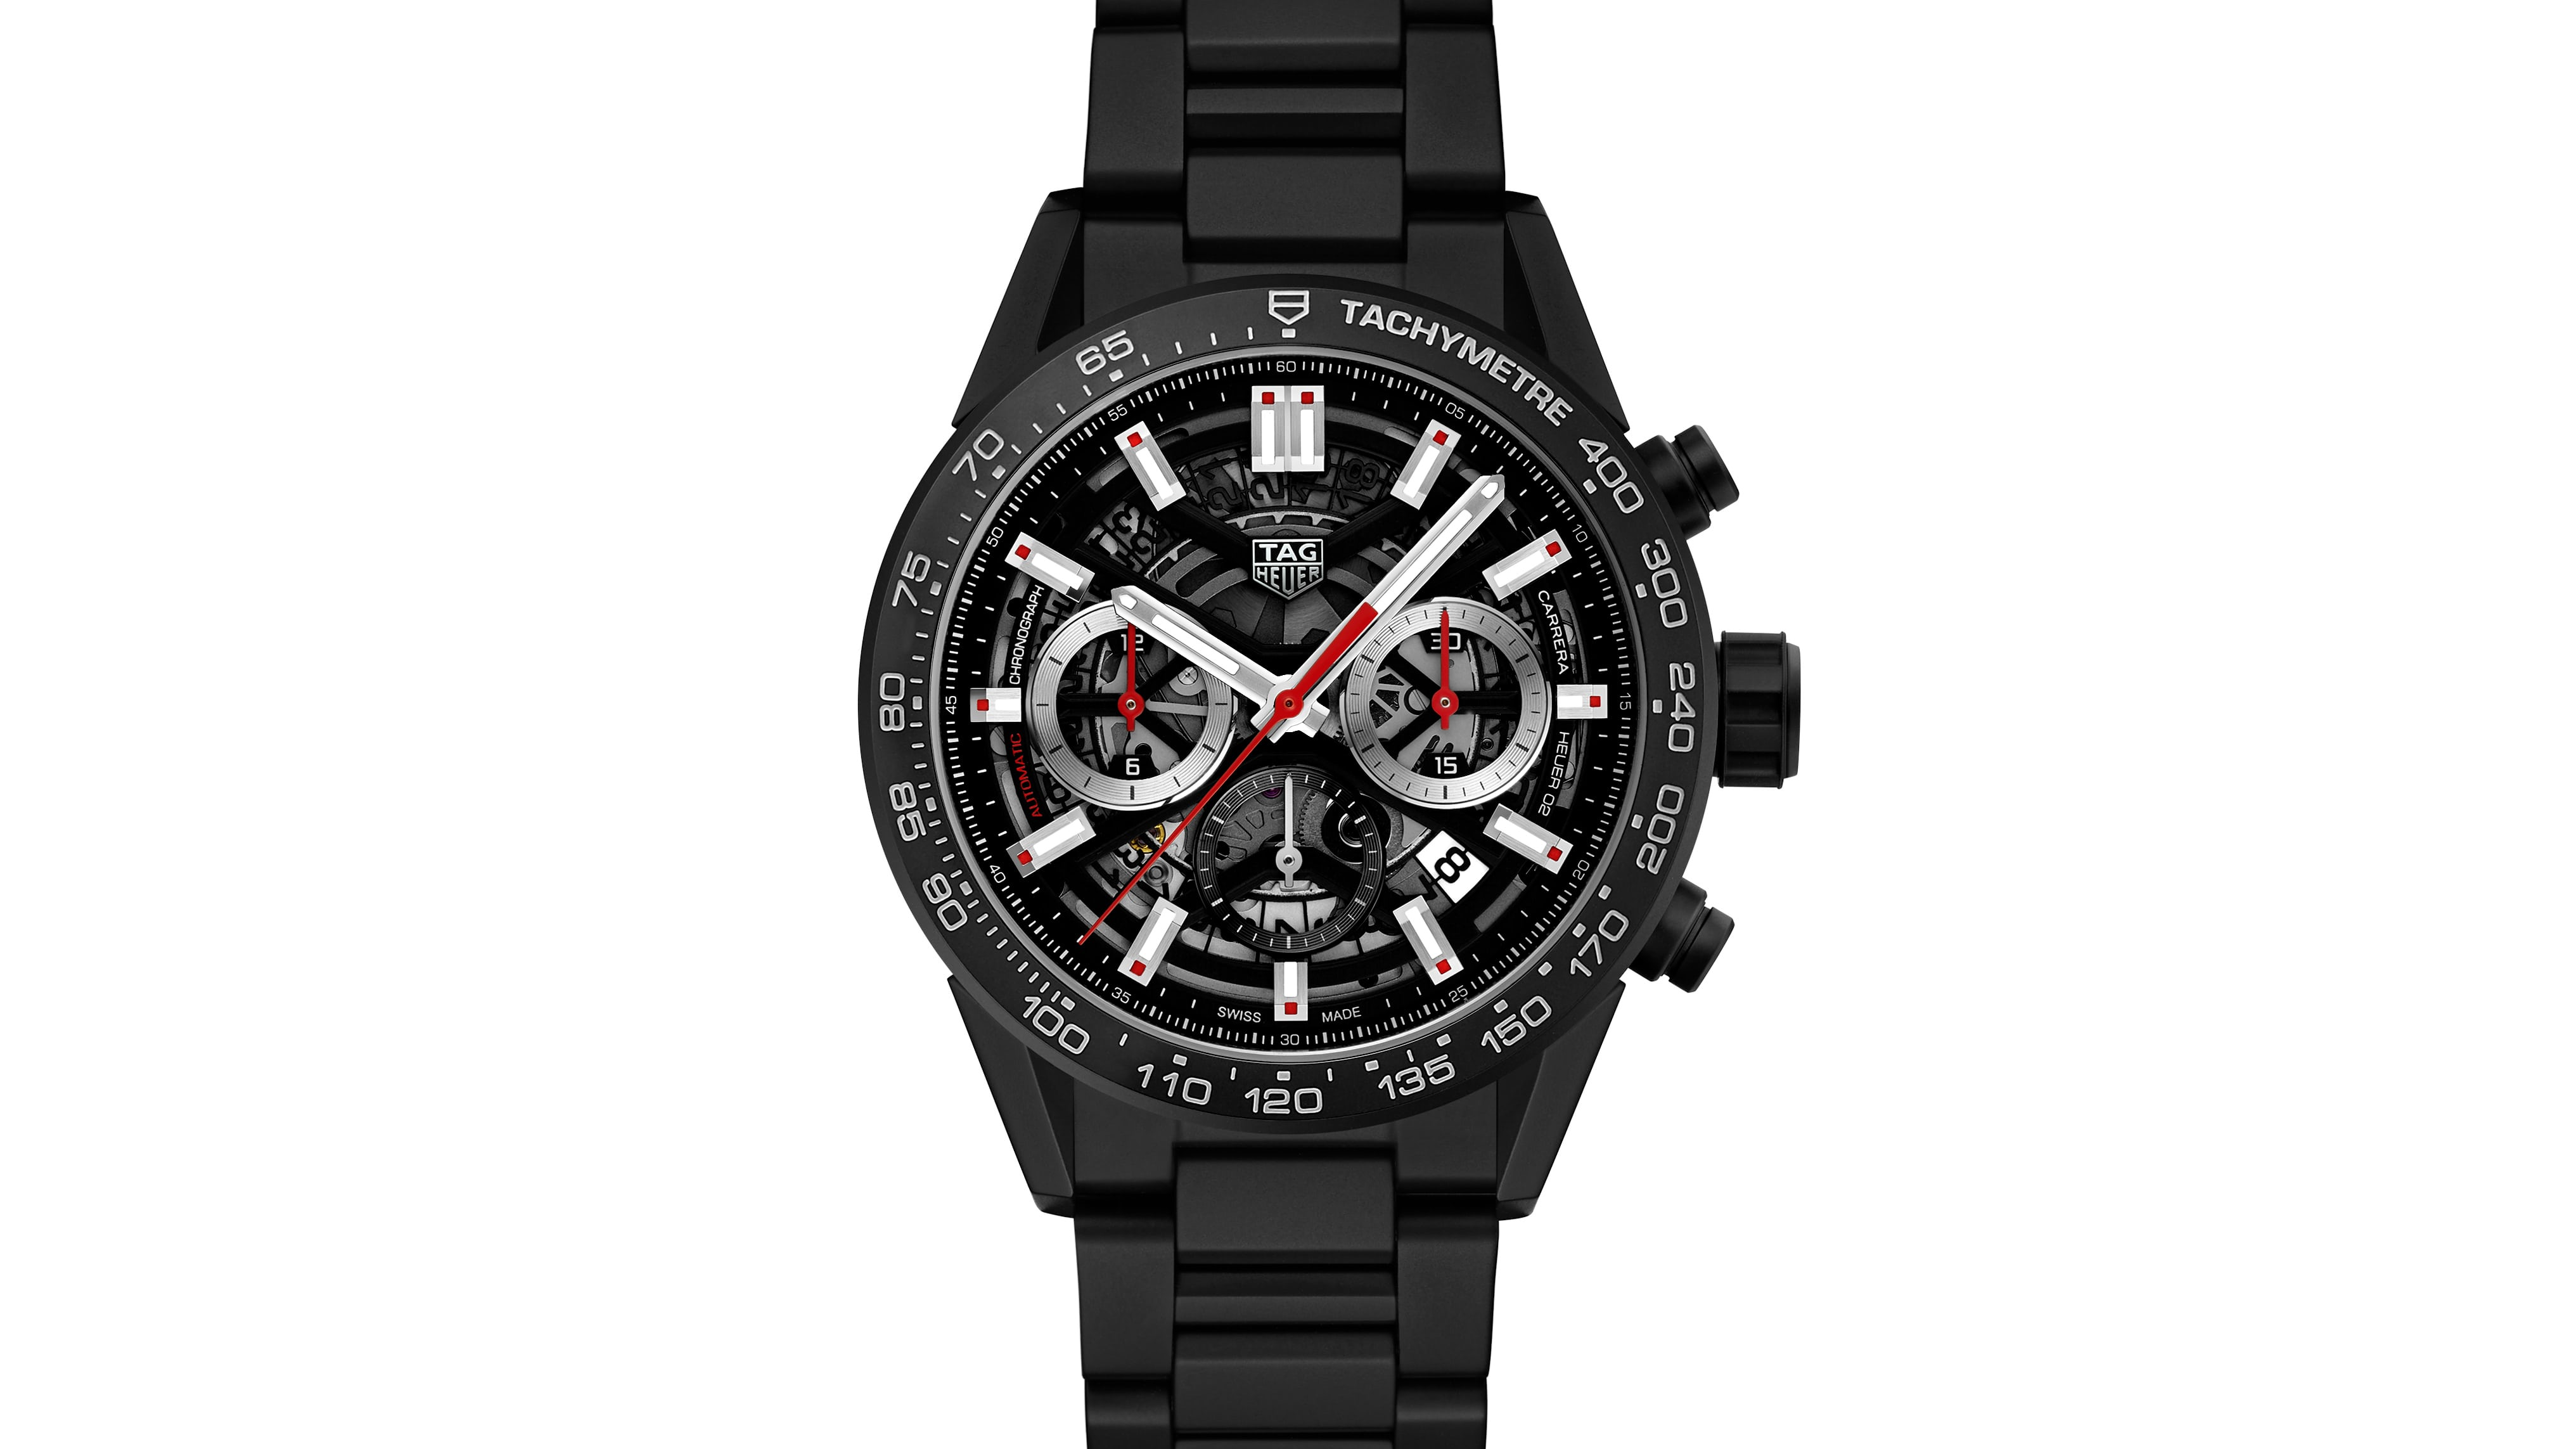 242b1aed65361 Introducing  The TAG Heuer Carrera Heuer 02 - HODINKEE